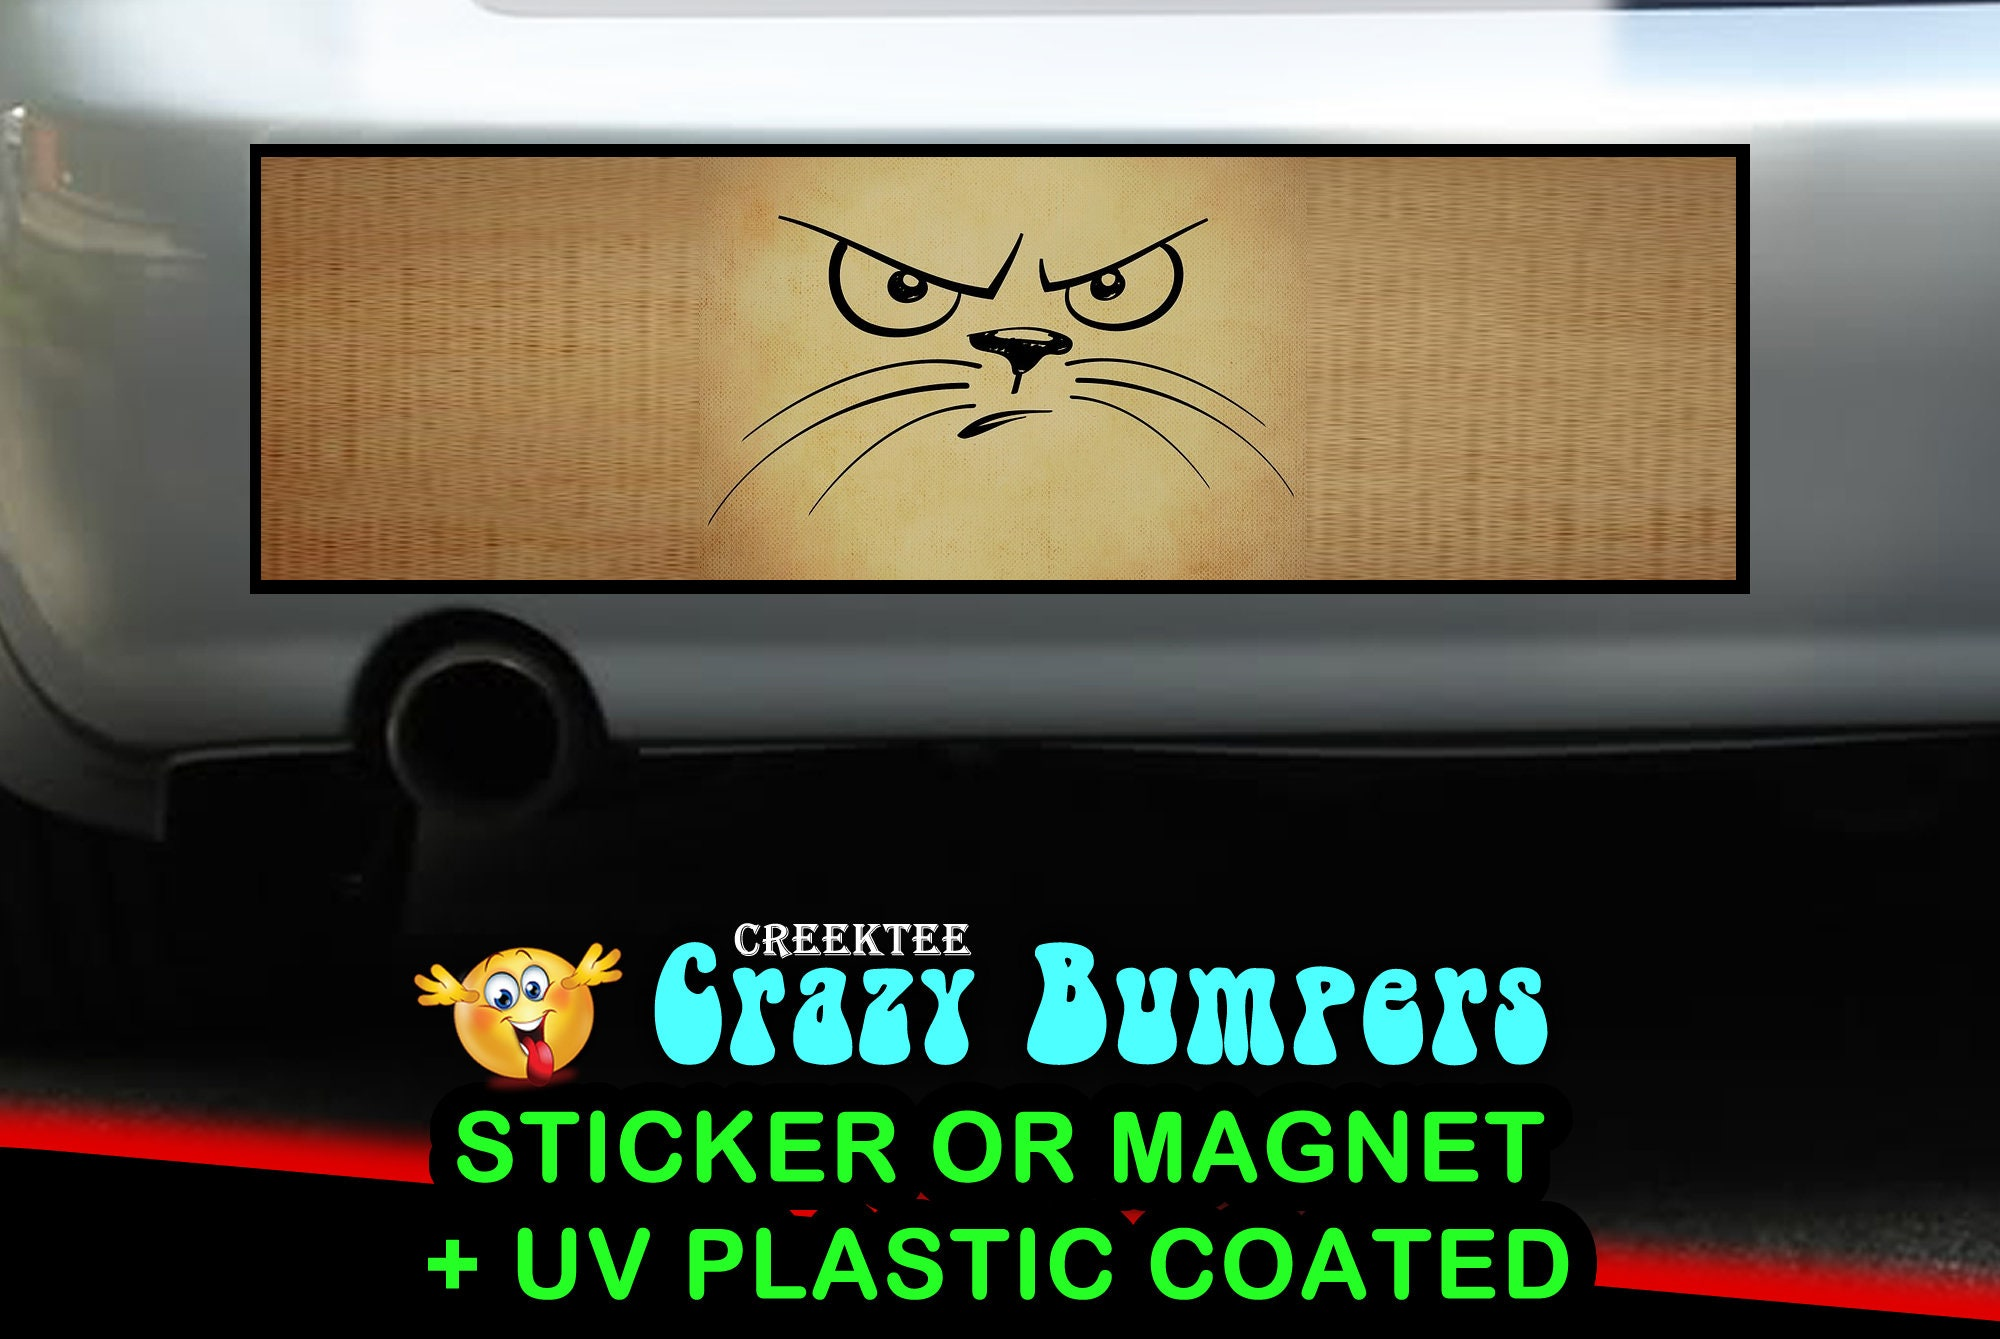 CAD$9.74 - Angry Cat 10 x 3 Bumper Sticker or Magnetic Bumper Sticker Available